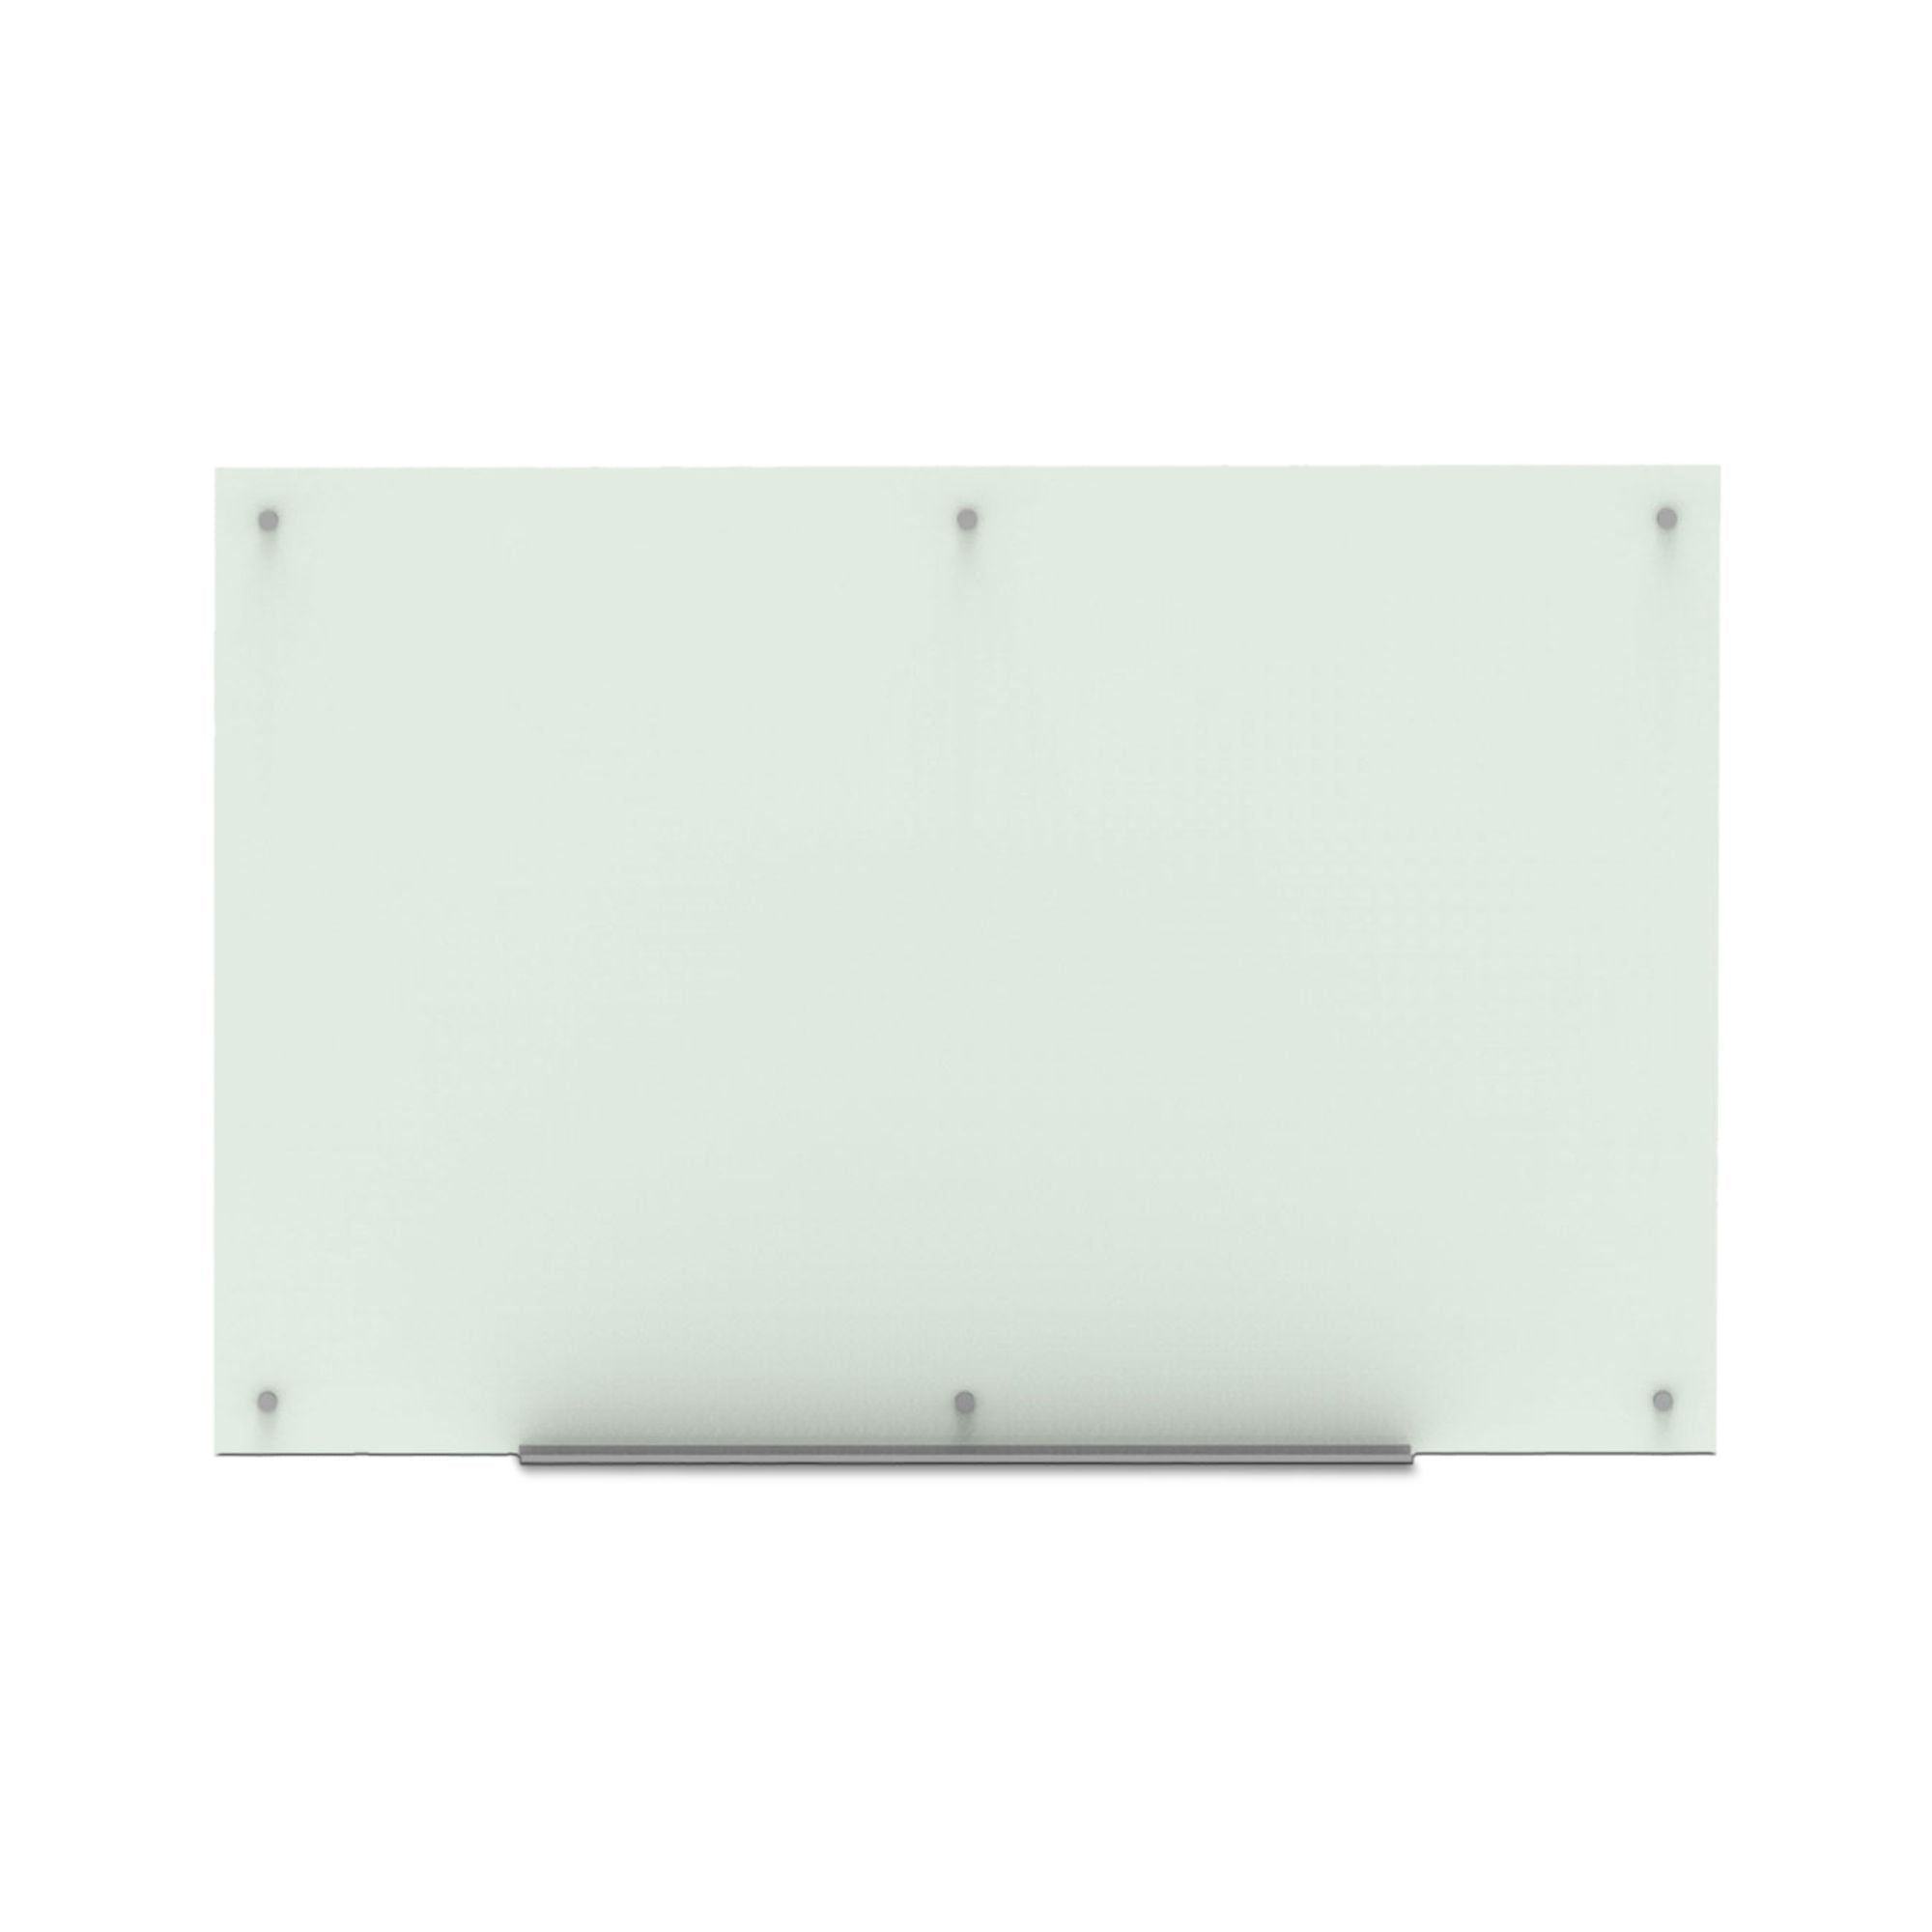 Luxor 60 W X 40 H Magnetic Wall Mounted Glass Board Premium Whiteboards